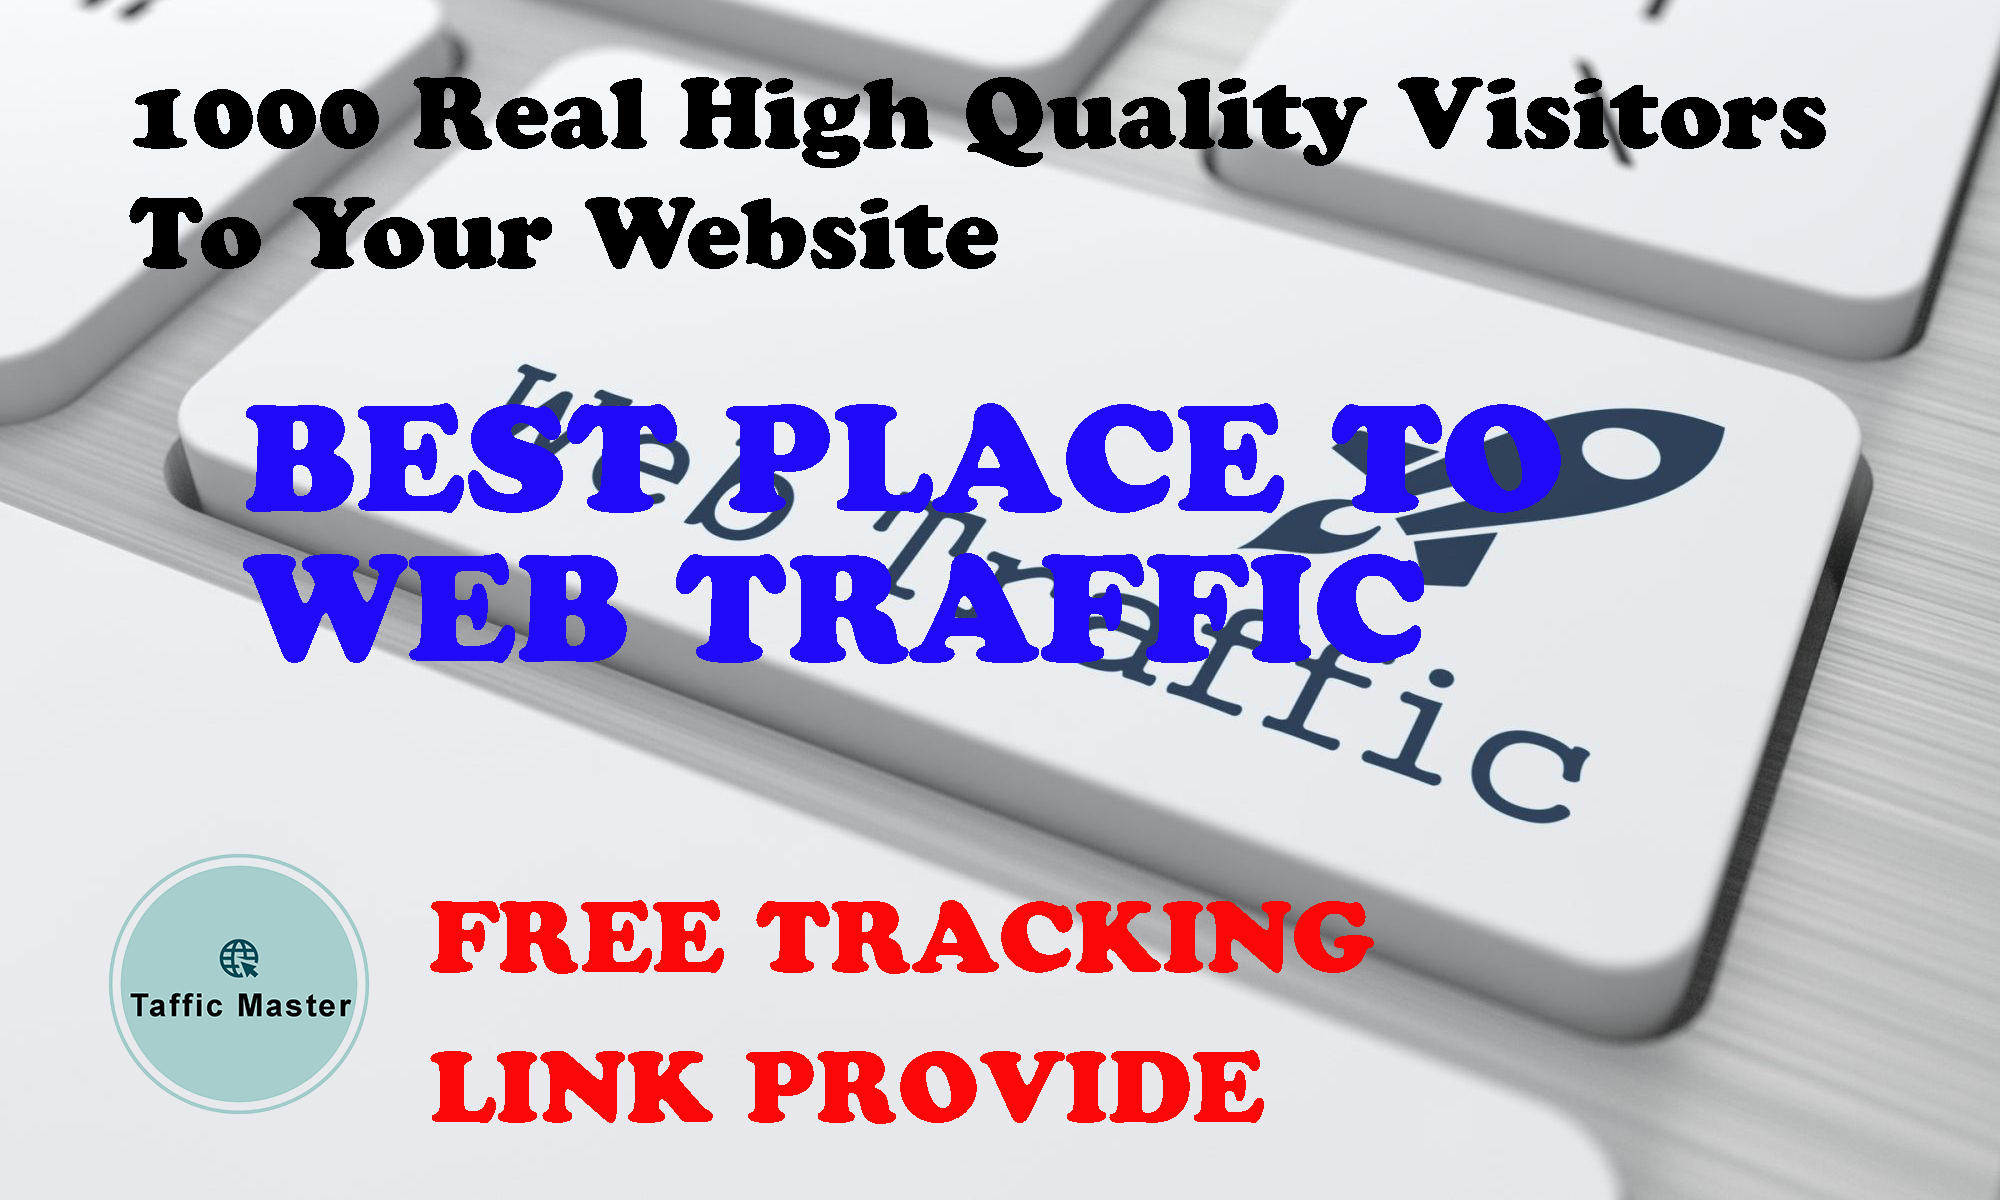 I will bring 1000 real high quality web traffic to website